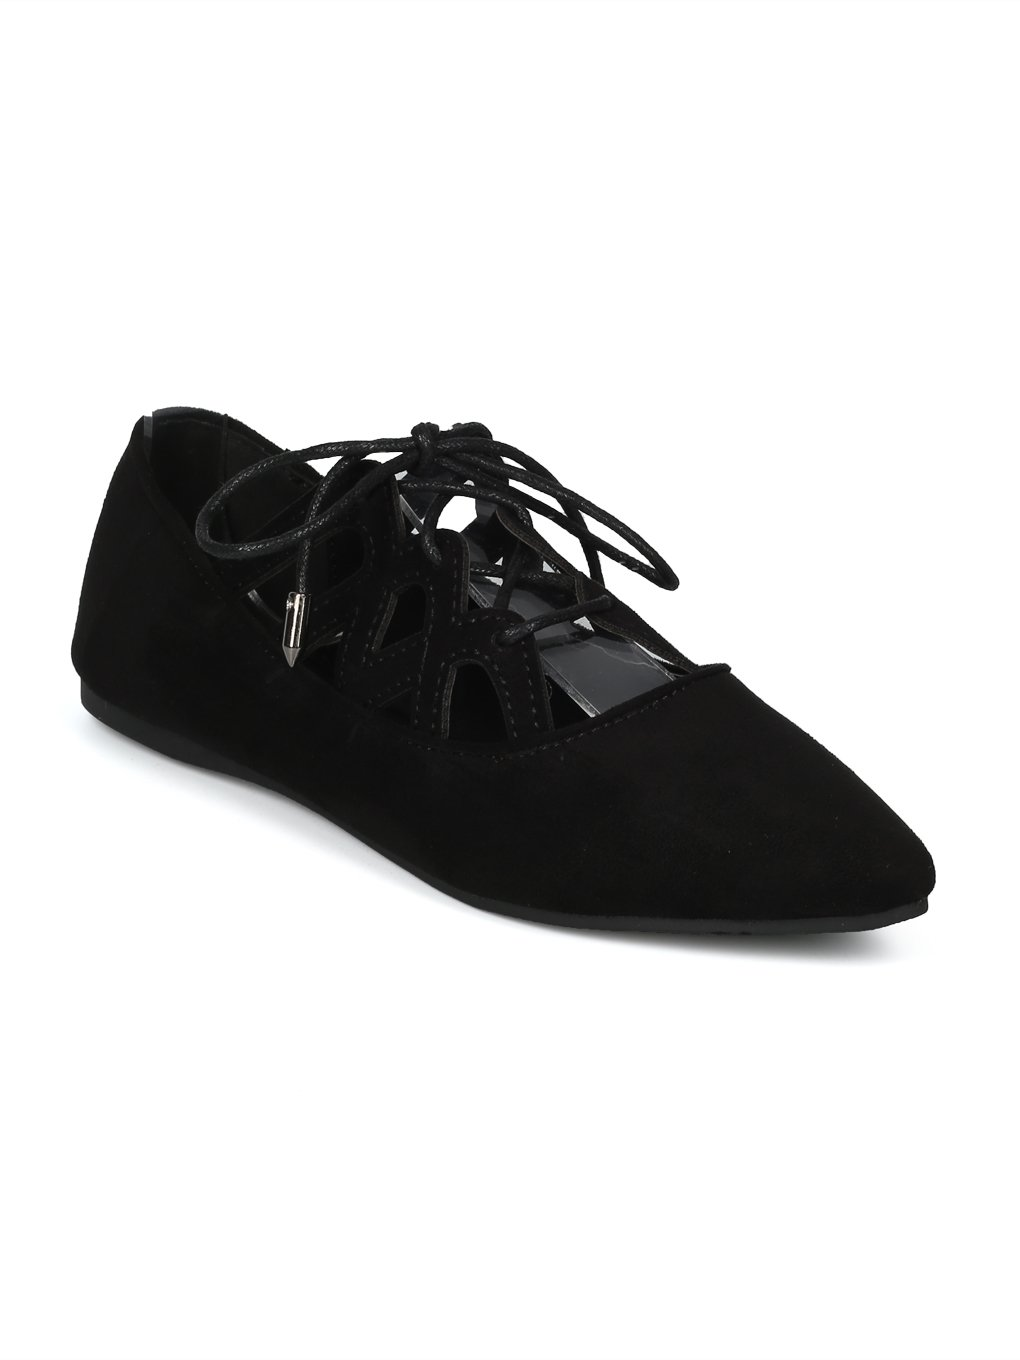 Alrisco Women Faux Suede Pointy Caged Lace up Flat HH91 B07D4QJV4R 8.5 B(M) US|Black Faux Suede